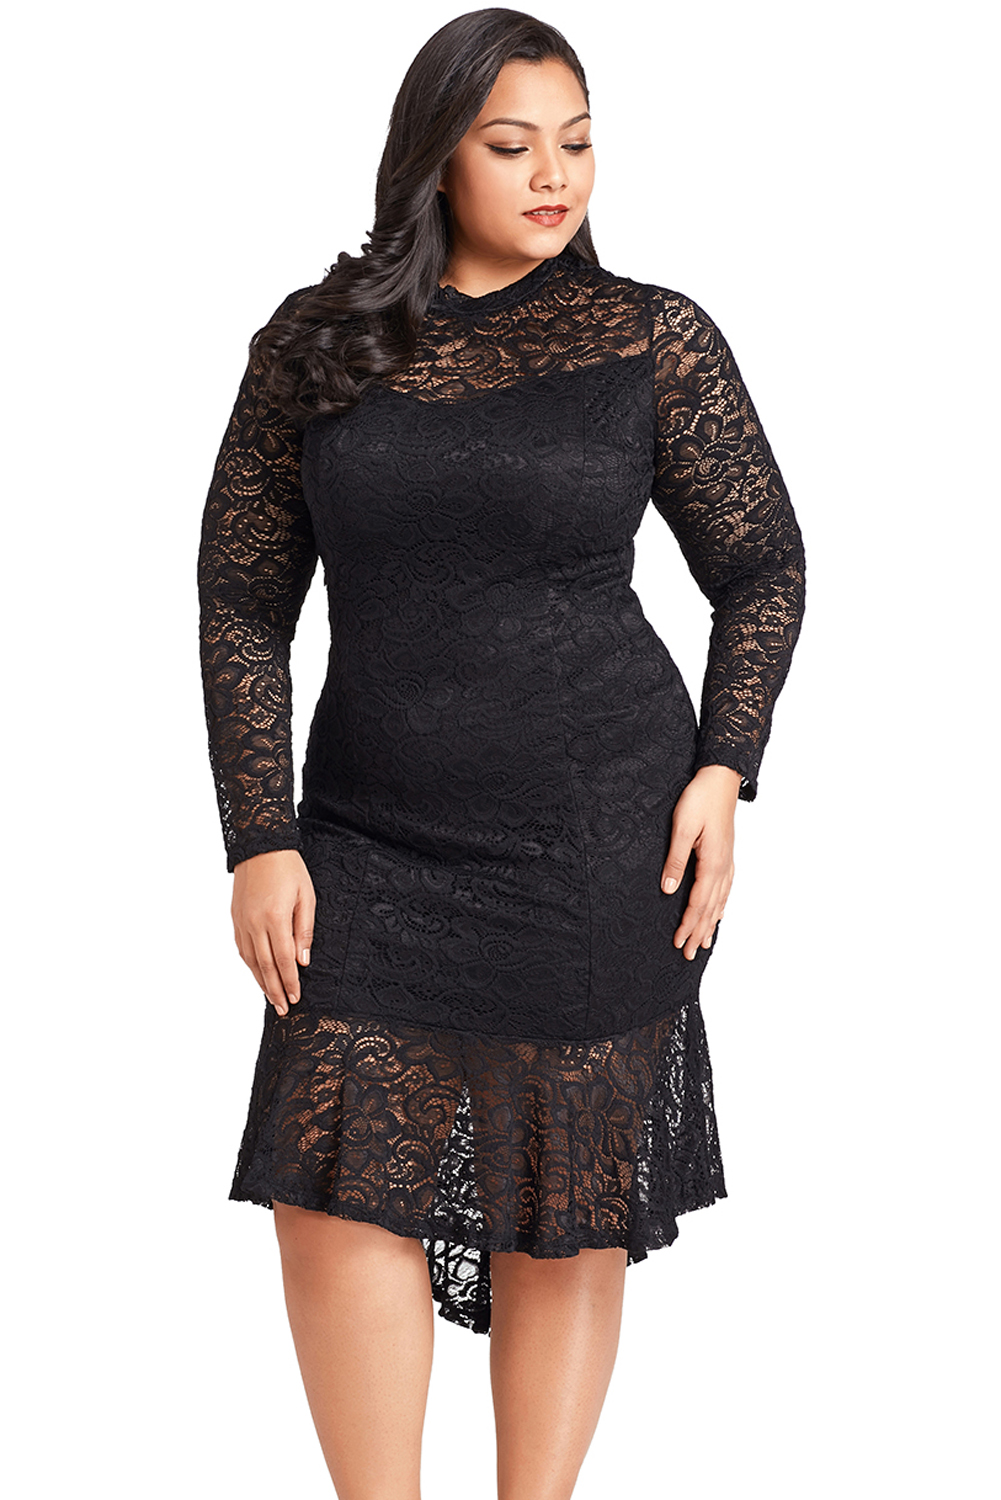 dca8f53301d Plus size floral lace hi-lo mermaid womens dress high low long ...